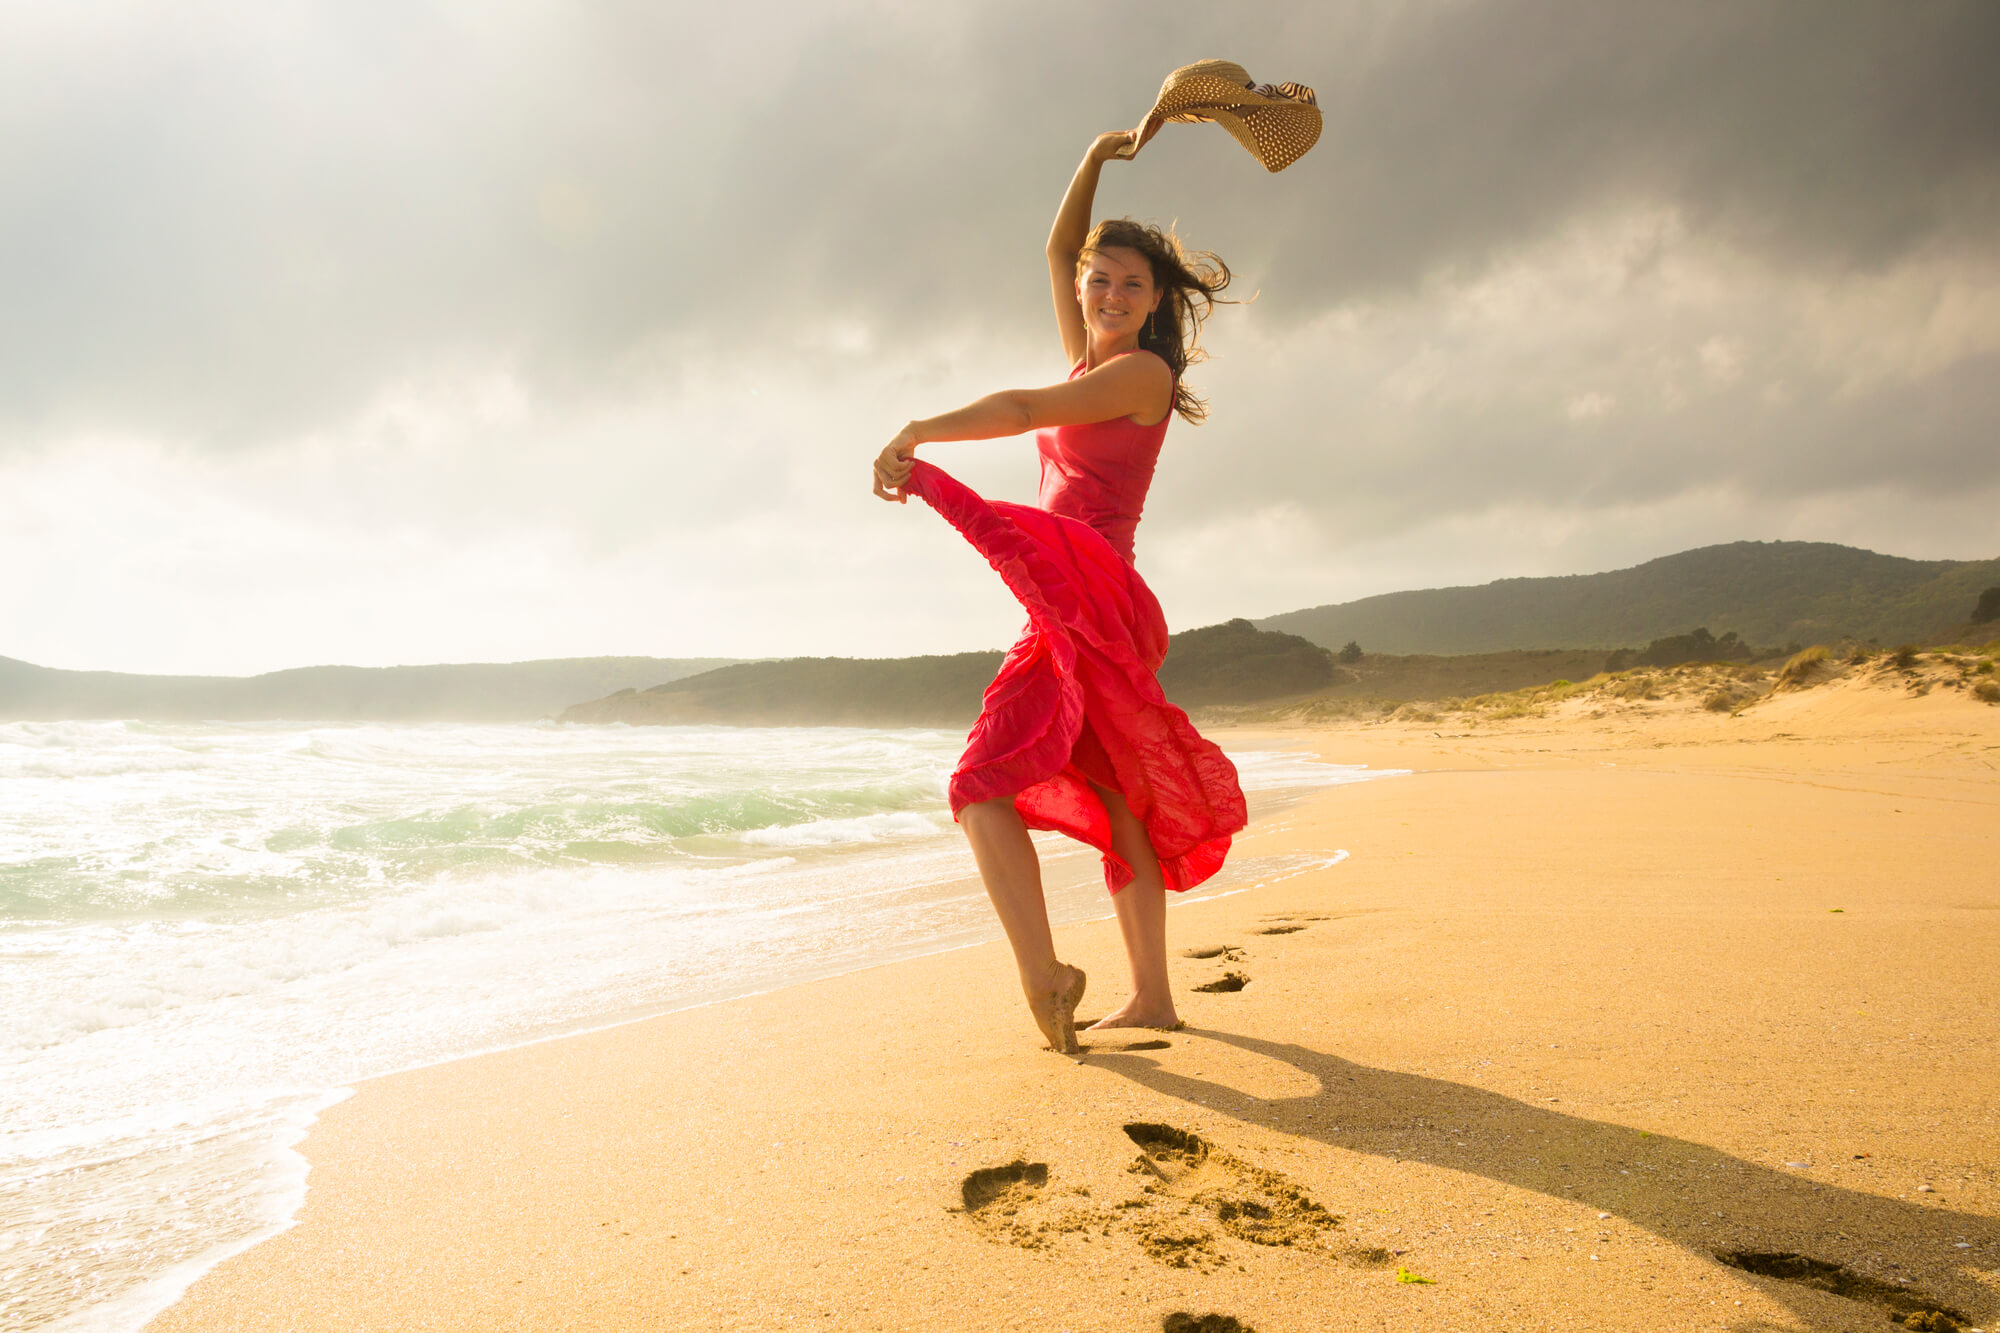 Woman dancing on beach